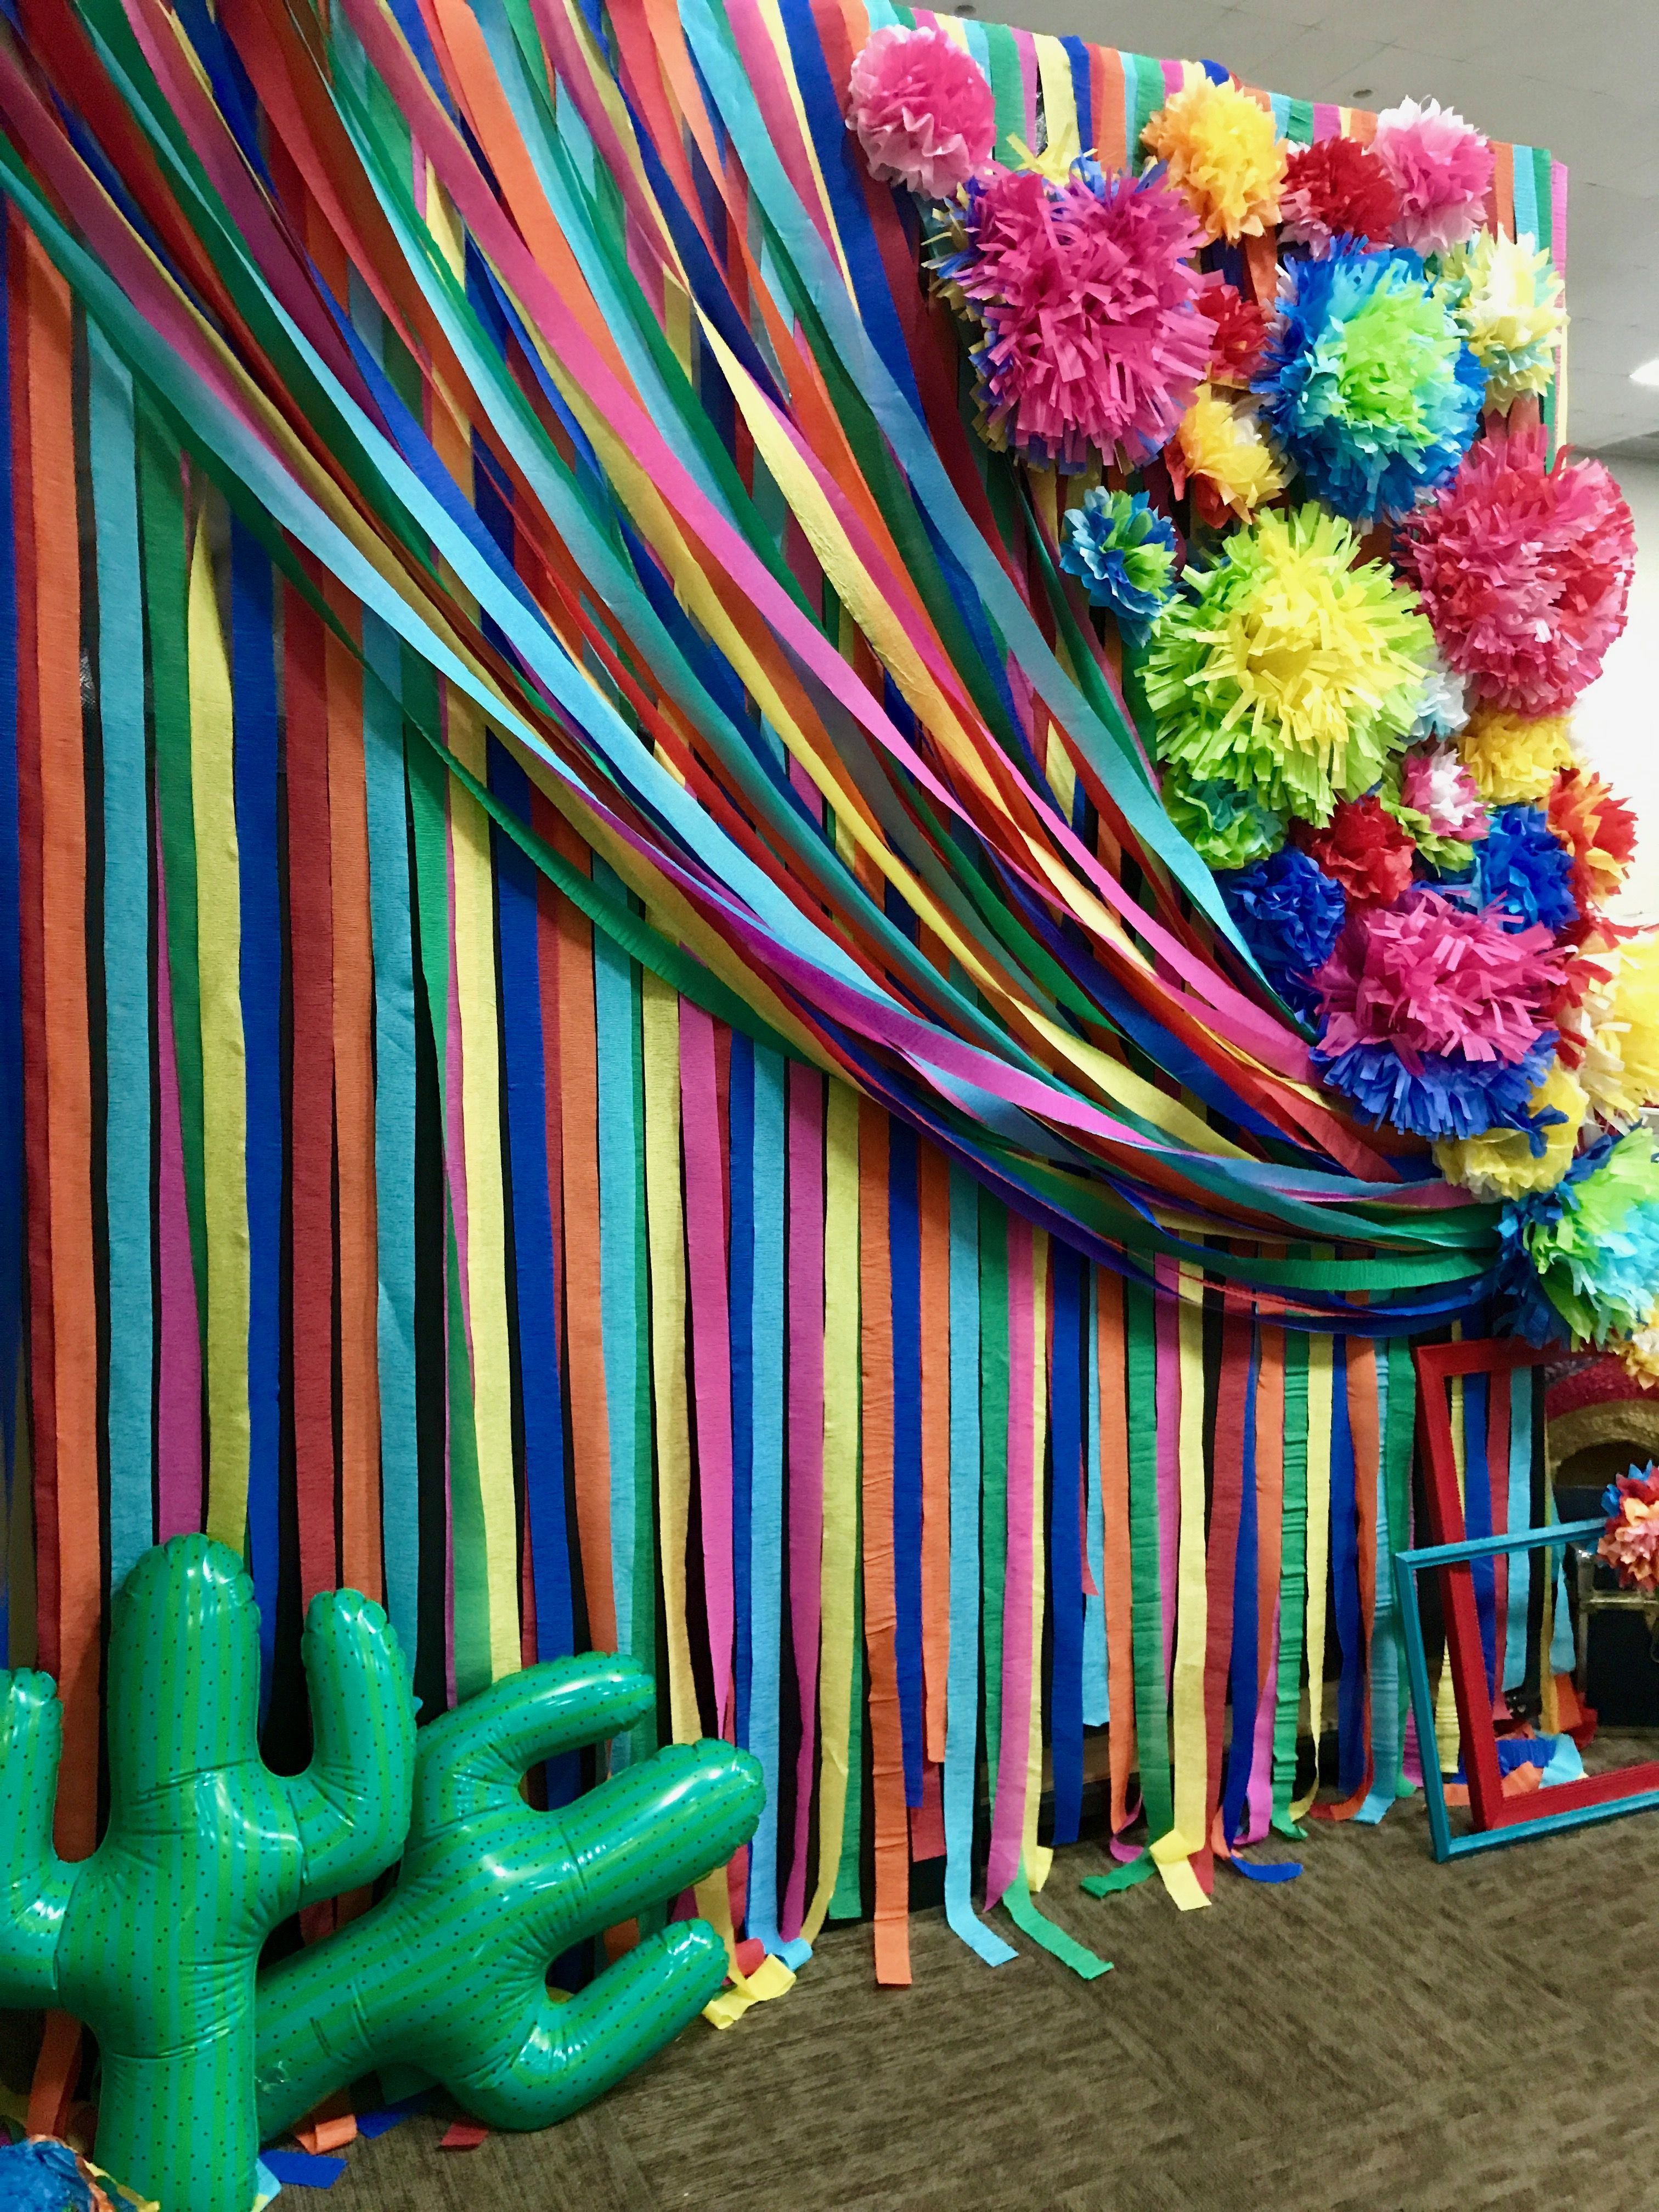 6 Days Ago Mexican Party Decorations Fiesta Theme Party Fiesta Birthday Party